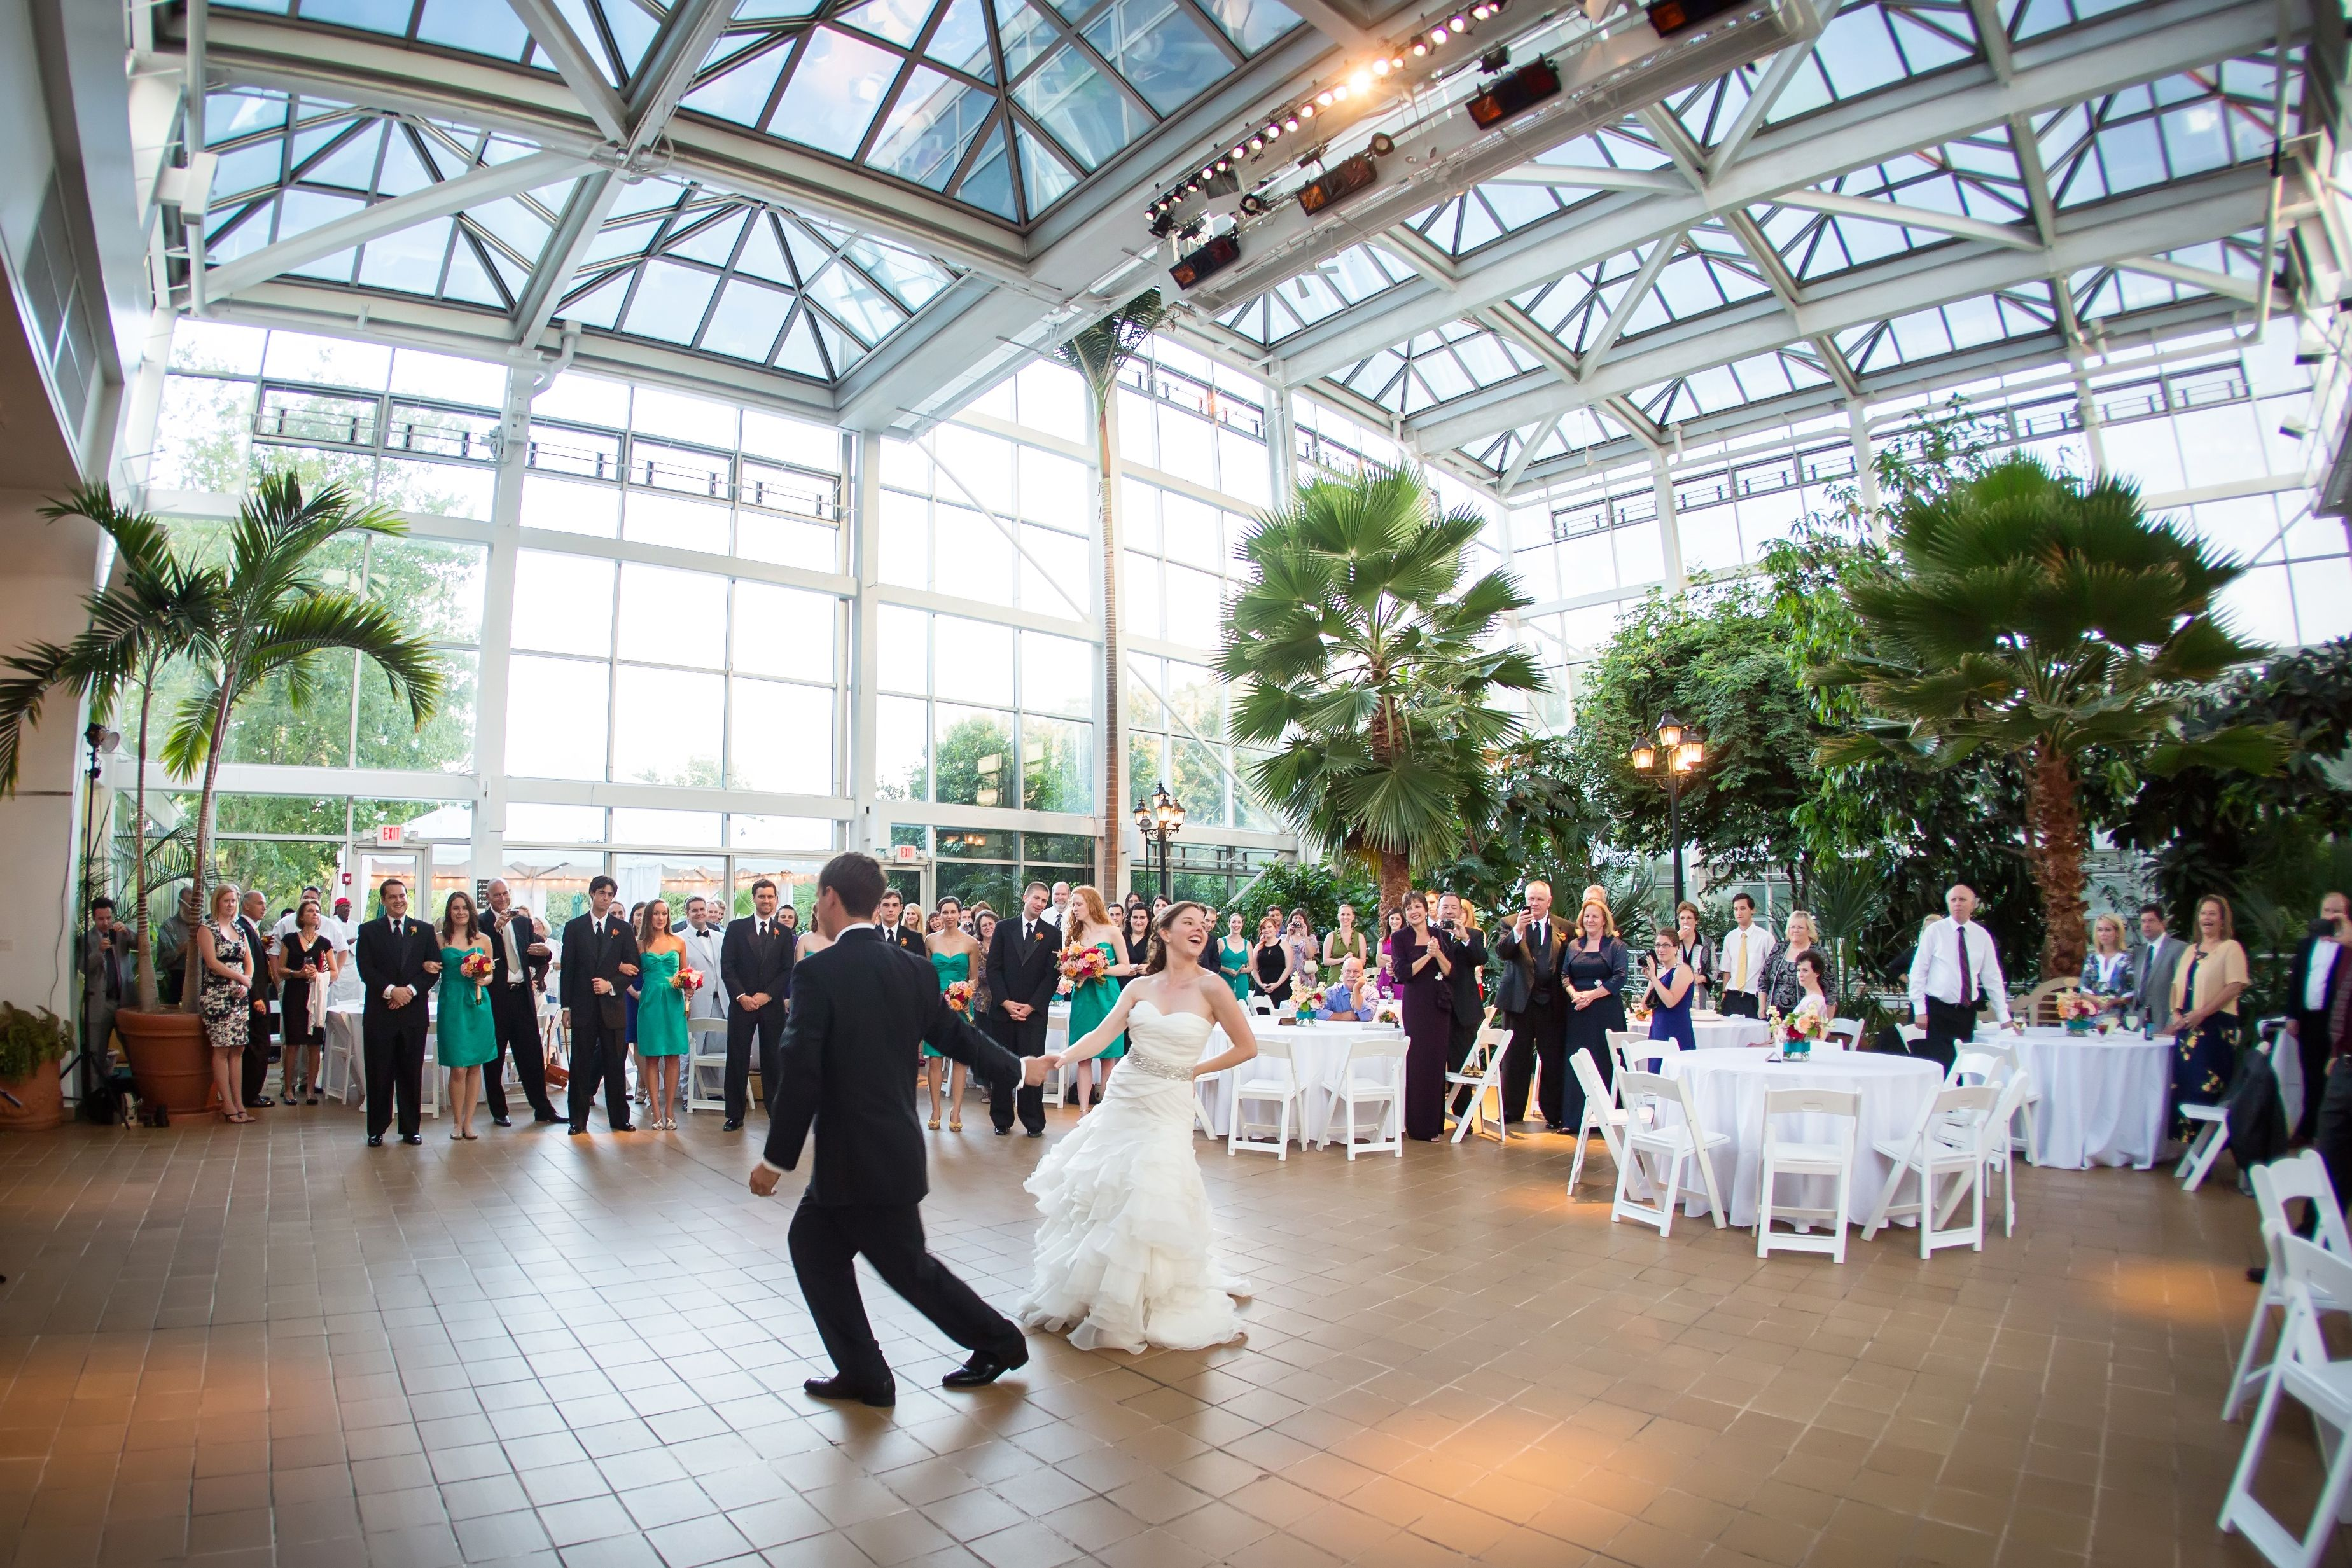 Swing dancing at the reception in the conservatory